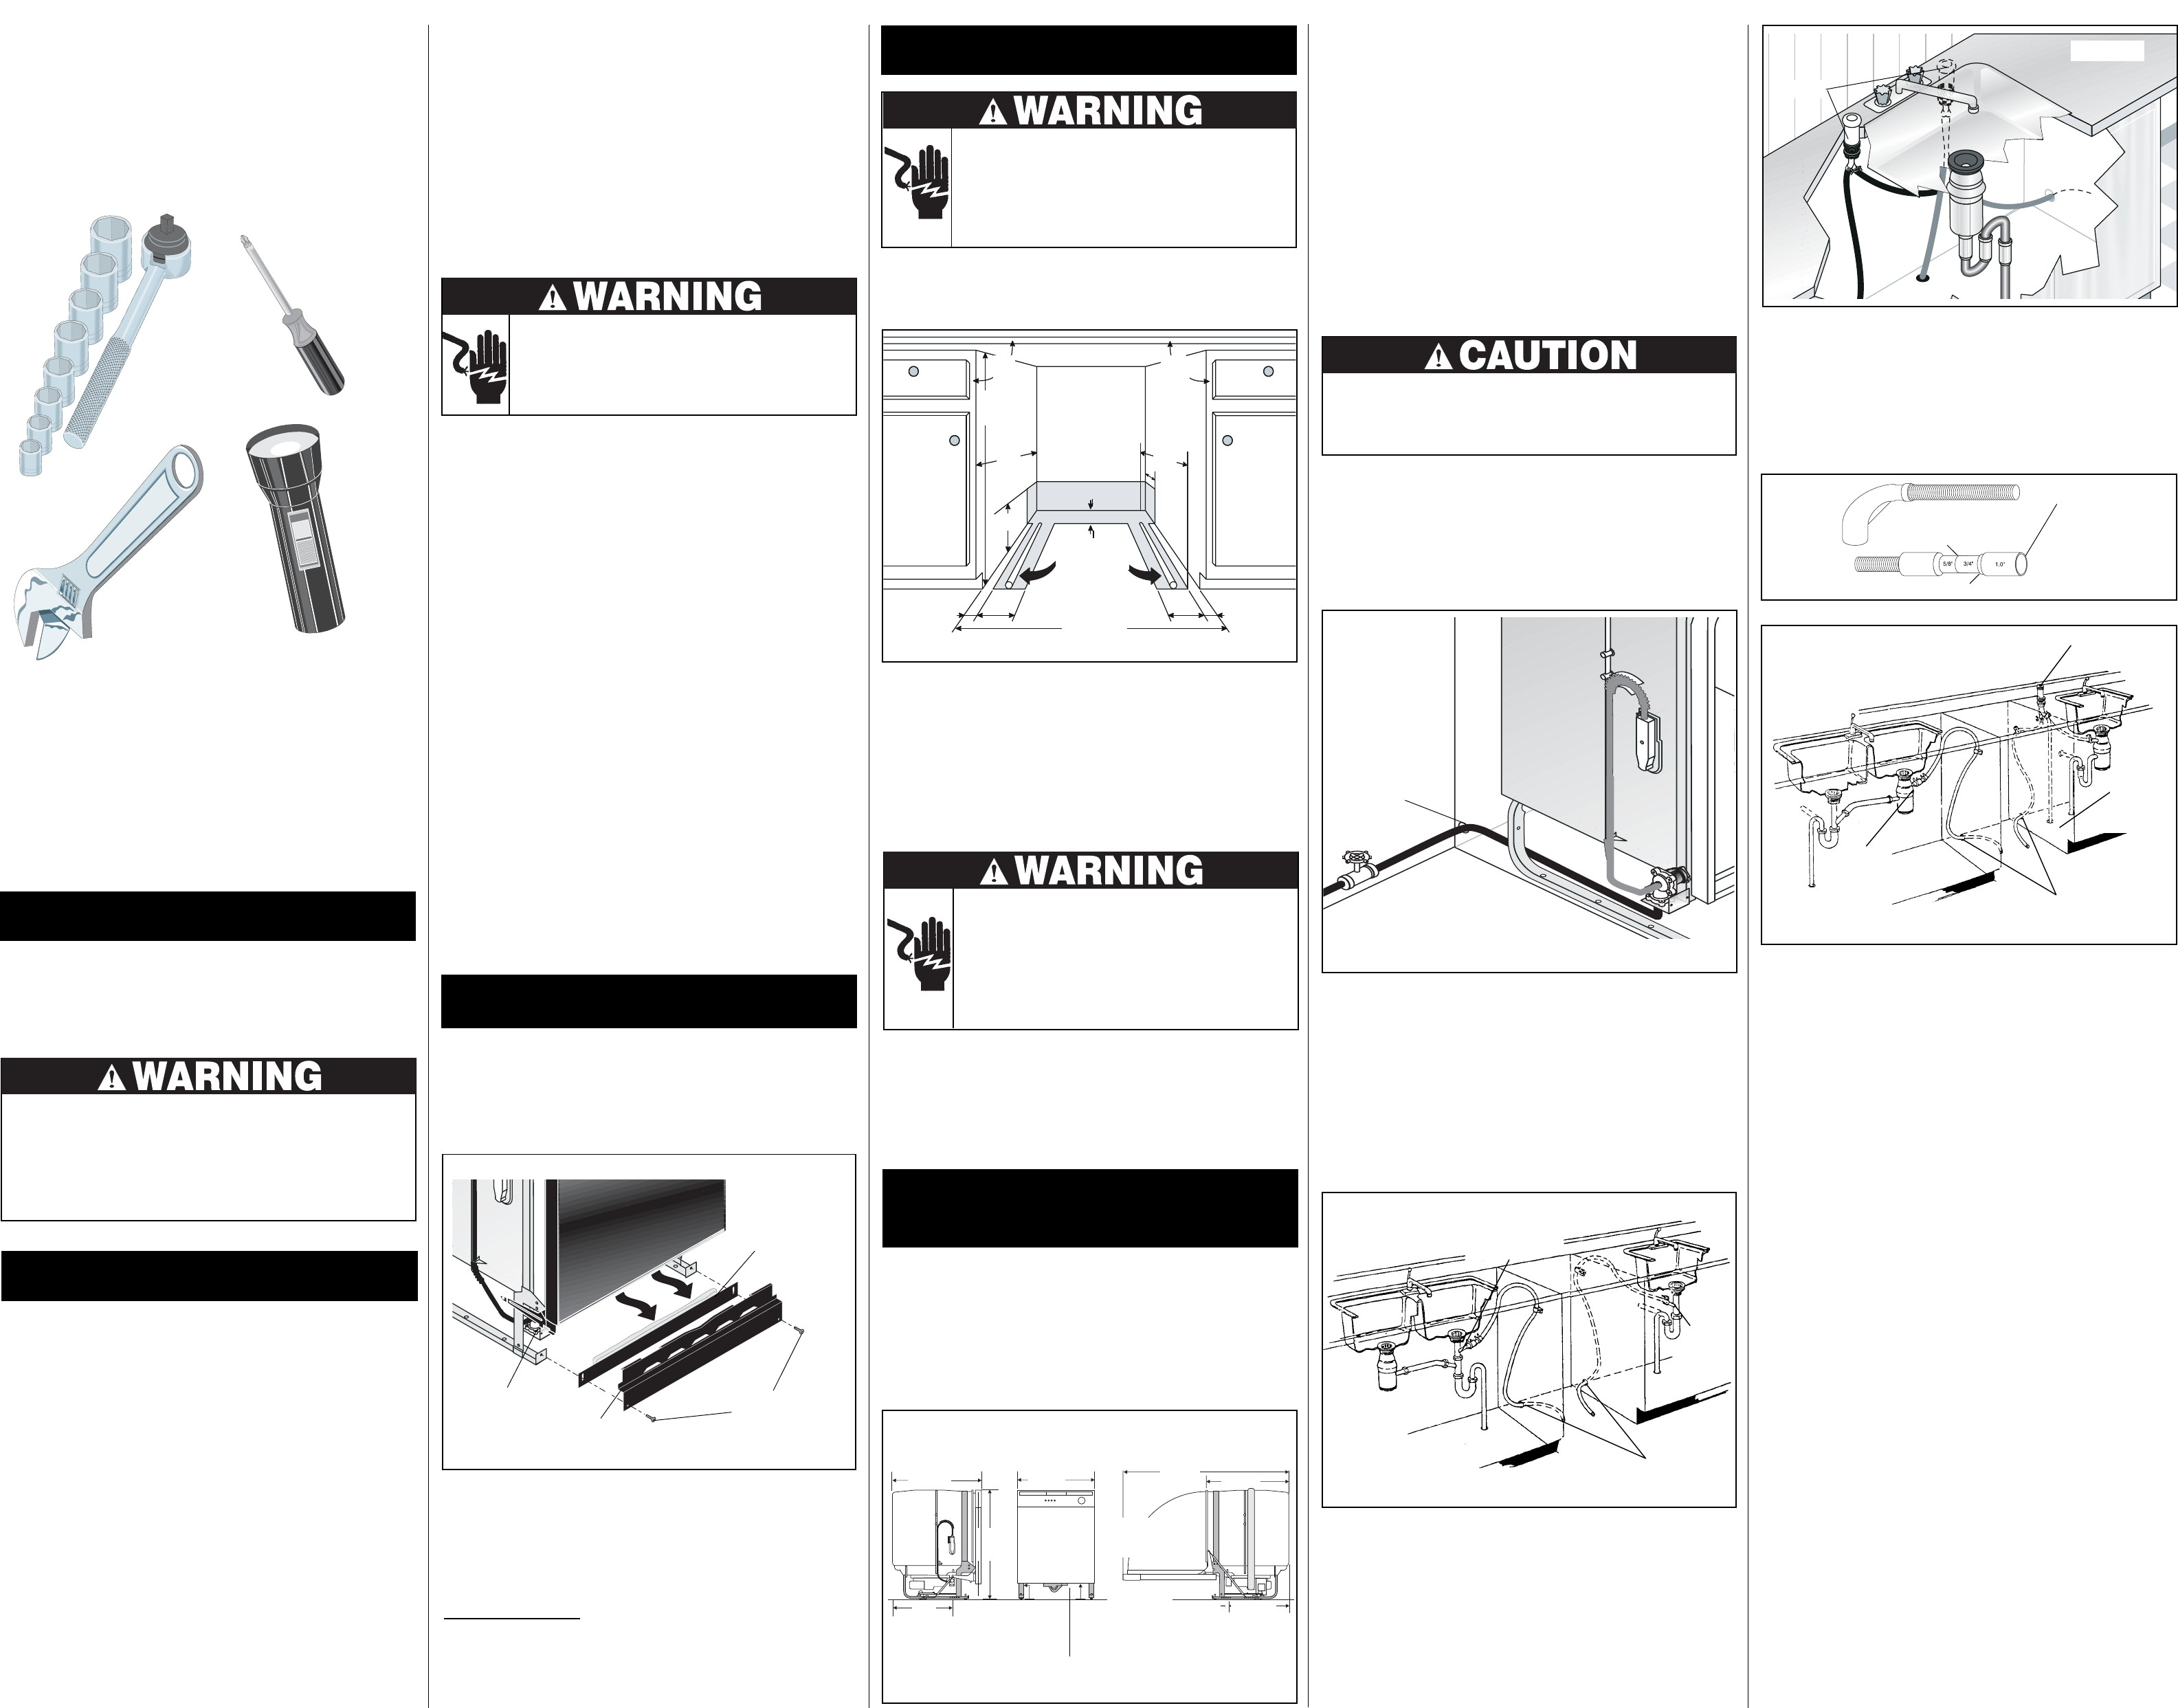 kitchenaid dishwasher wiring schematic